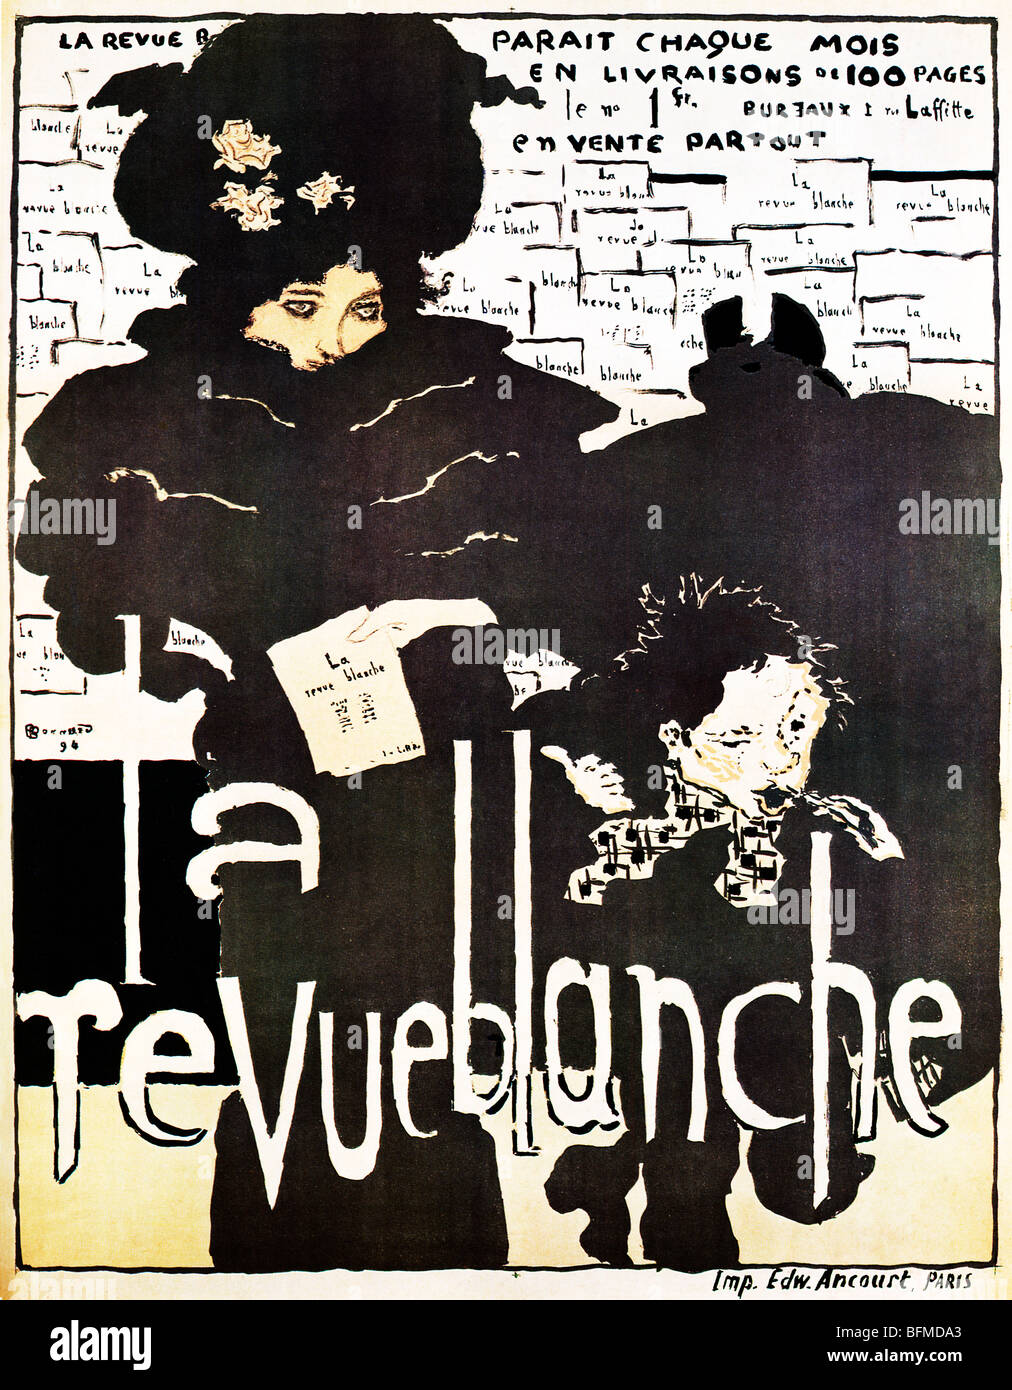 Bonnard, La Revue Blanche, 1894 Art Nouveau poster by Pierre Bonnard for the leading literary revue from the brothers - Stock Image